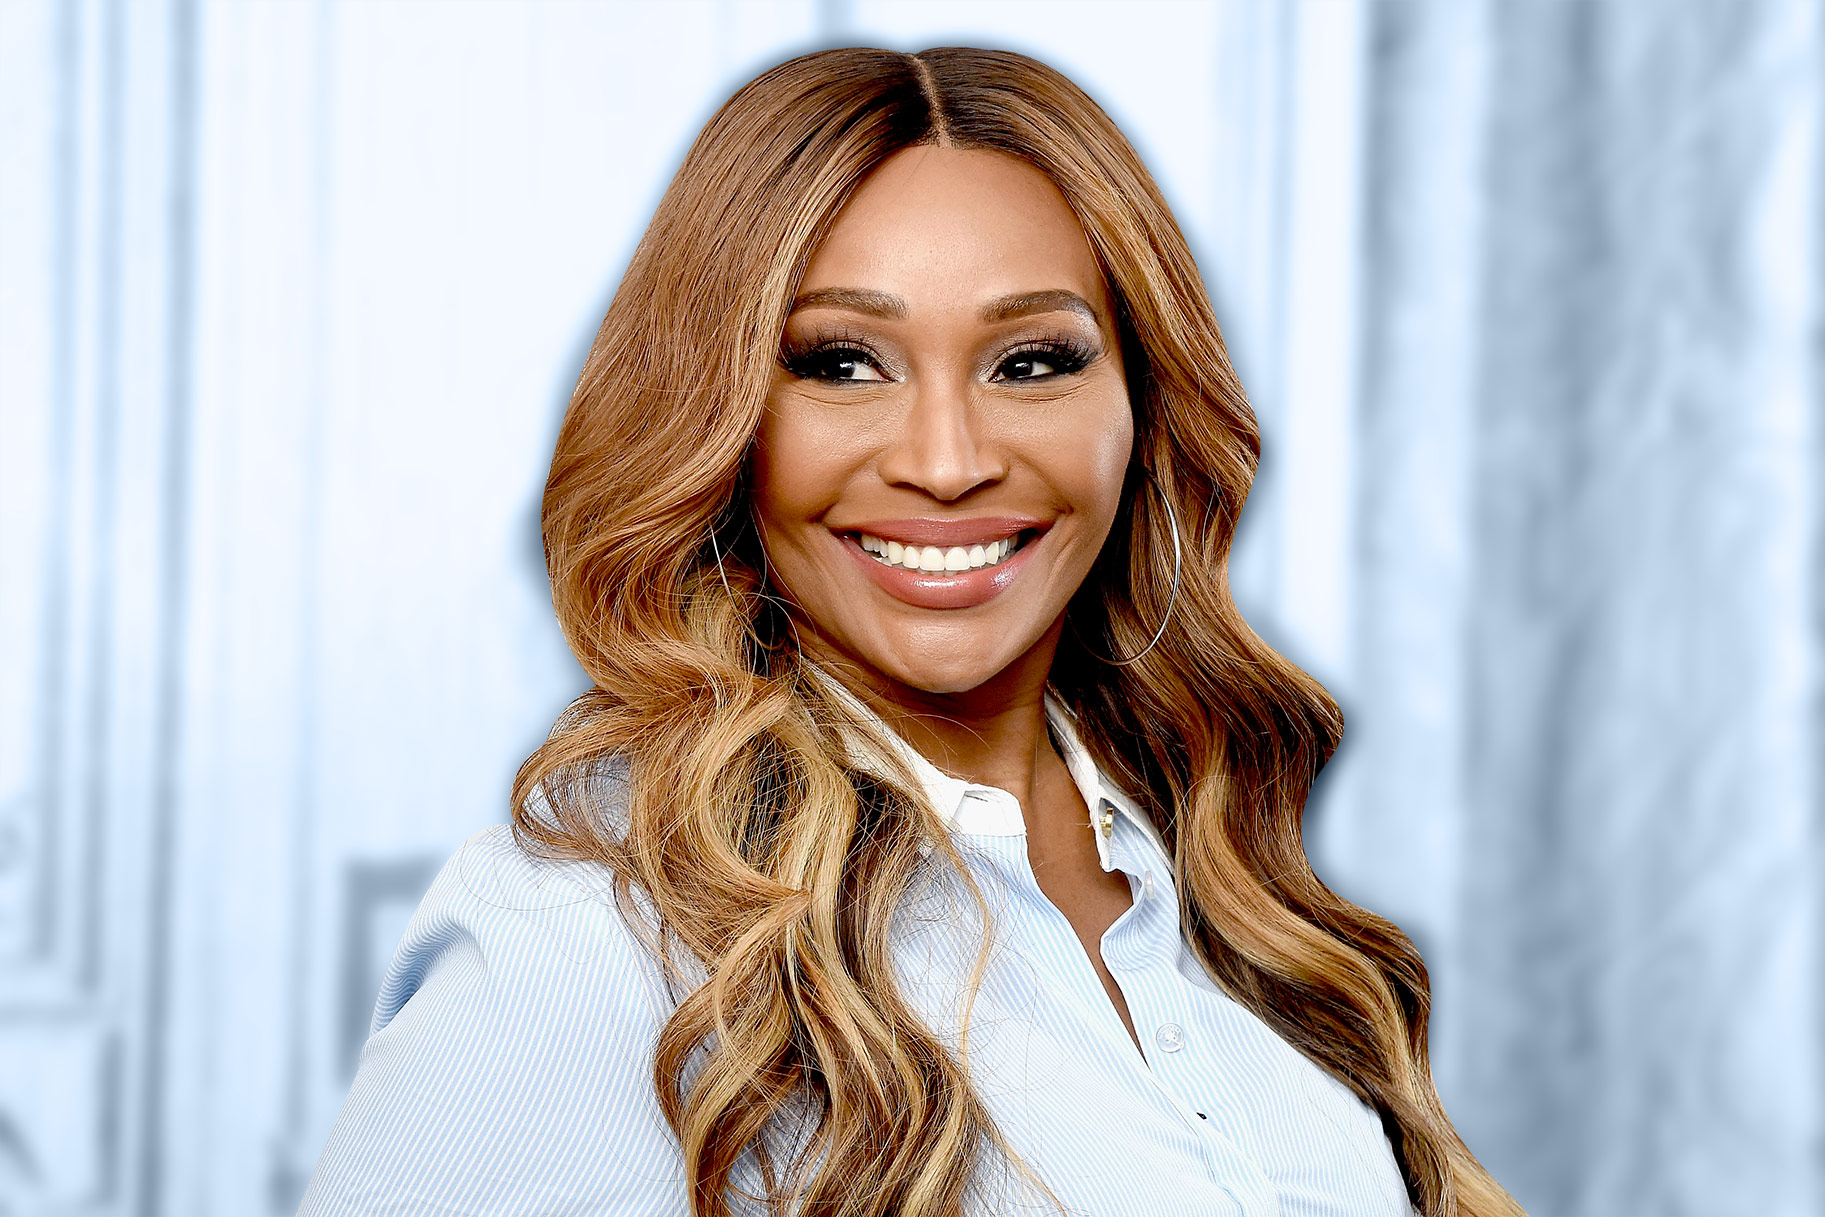 Cynthia Bailey's Latest Photos At Lake Bailey Have Fans Praising Her Beauty